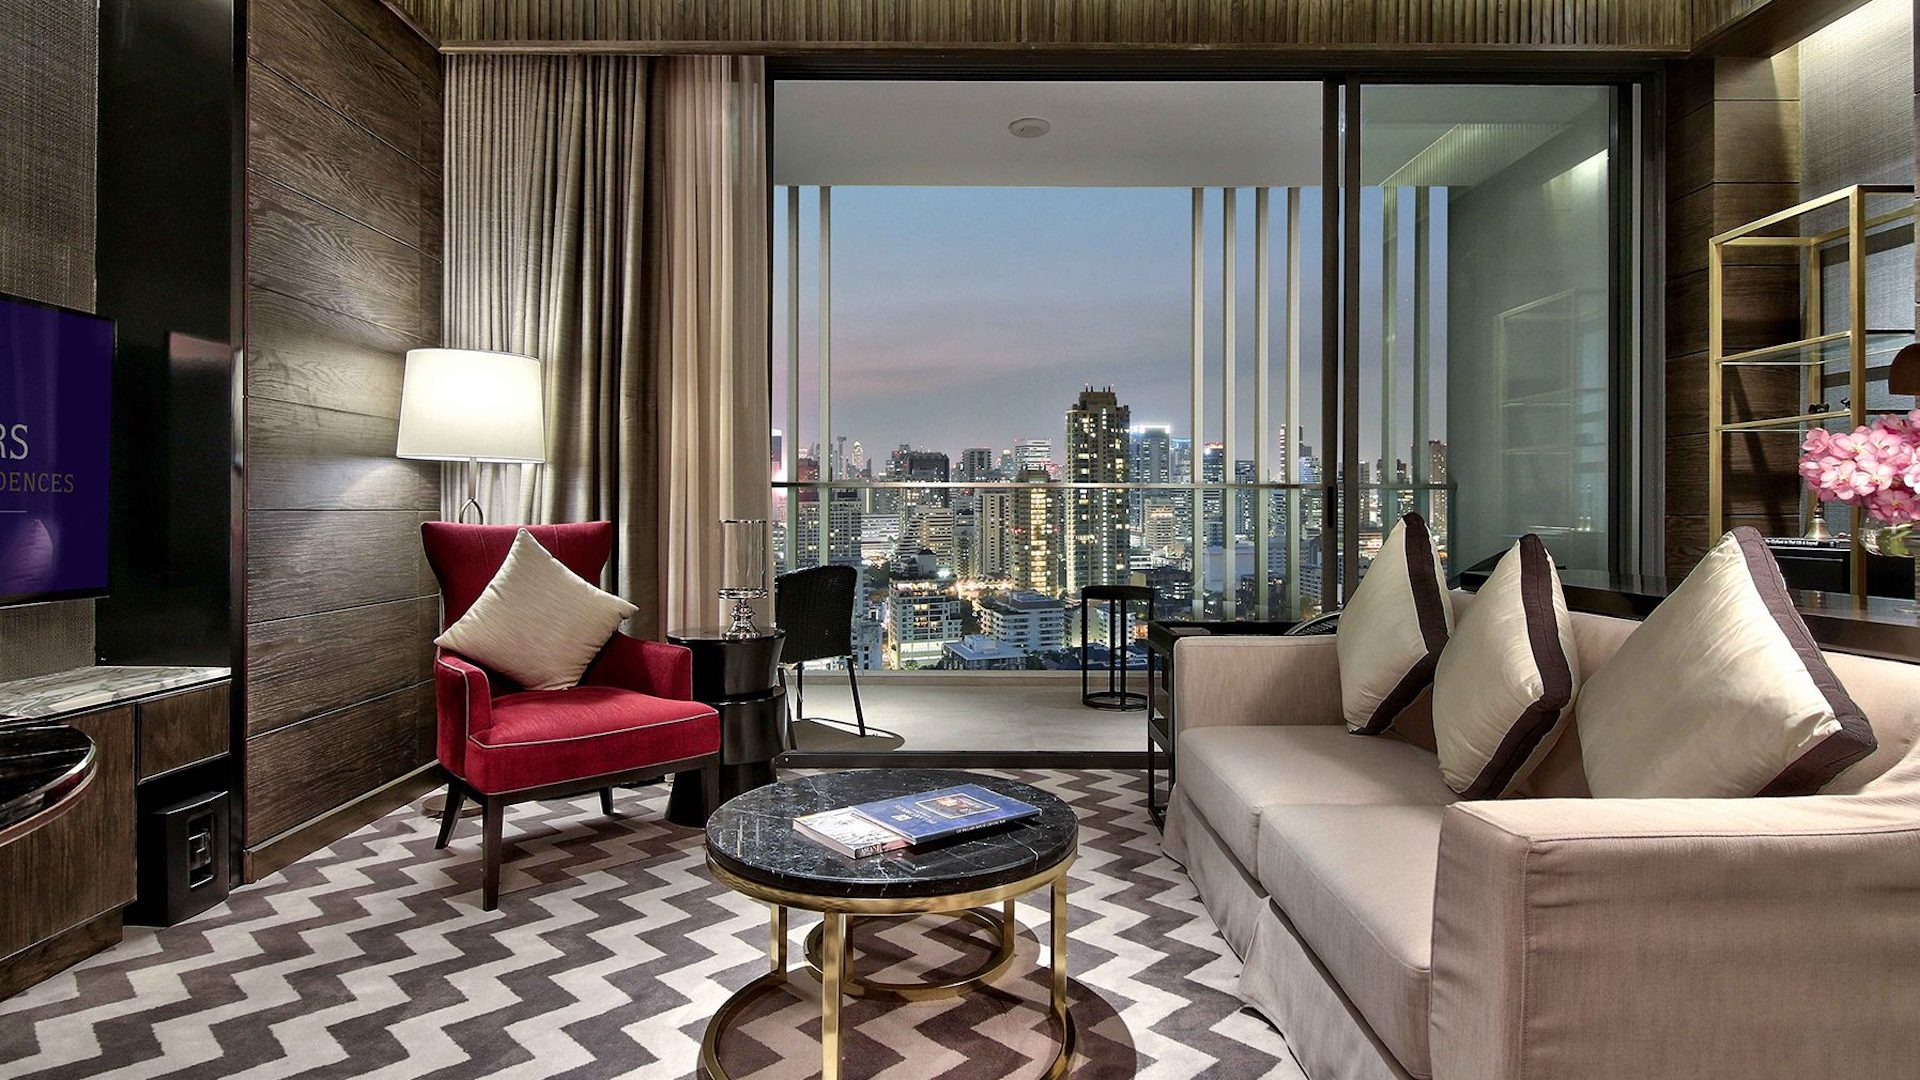 8 Best Luxury Hotels in Bangkok You Can't Miss